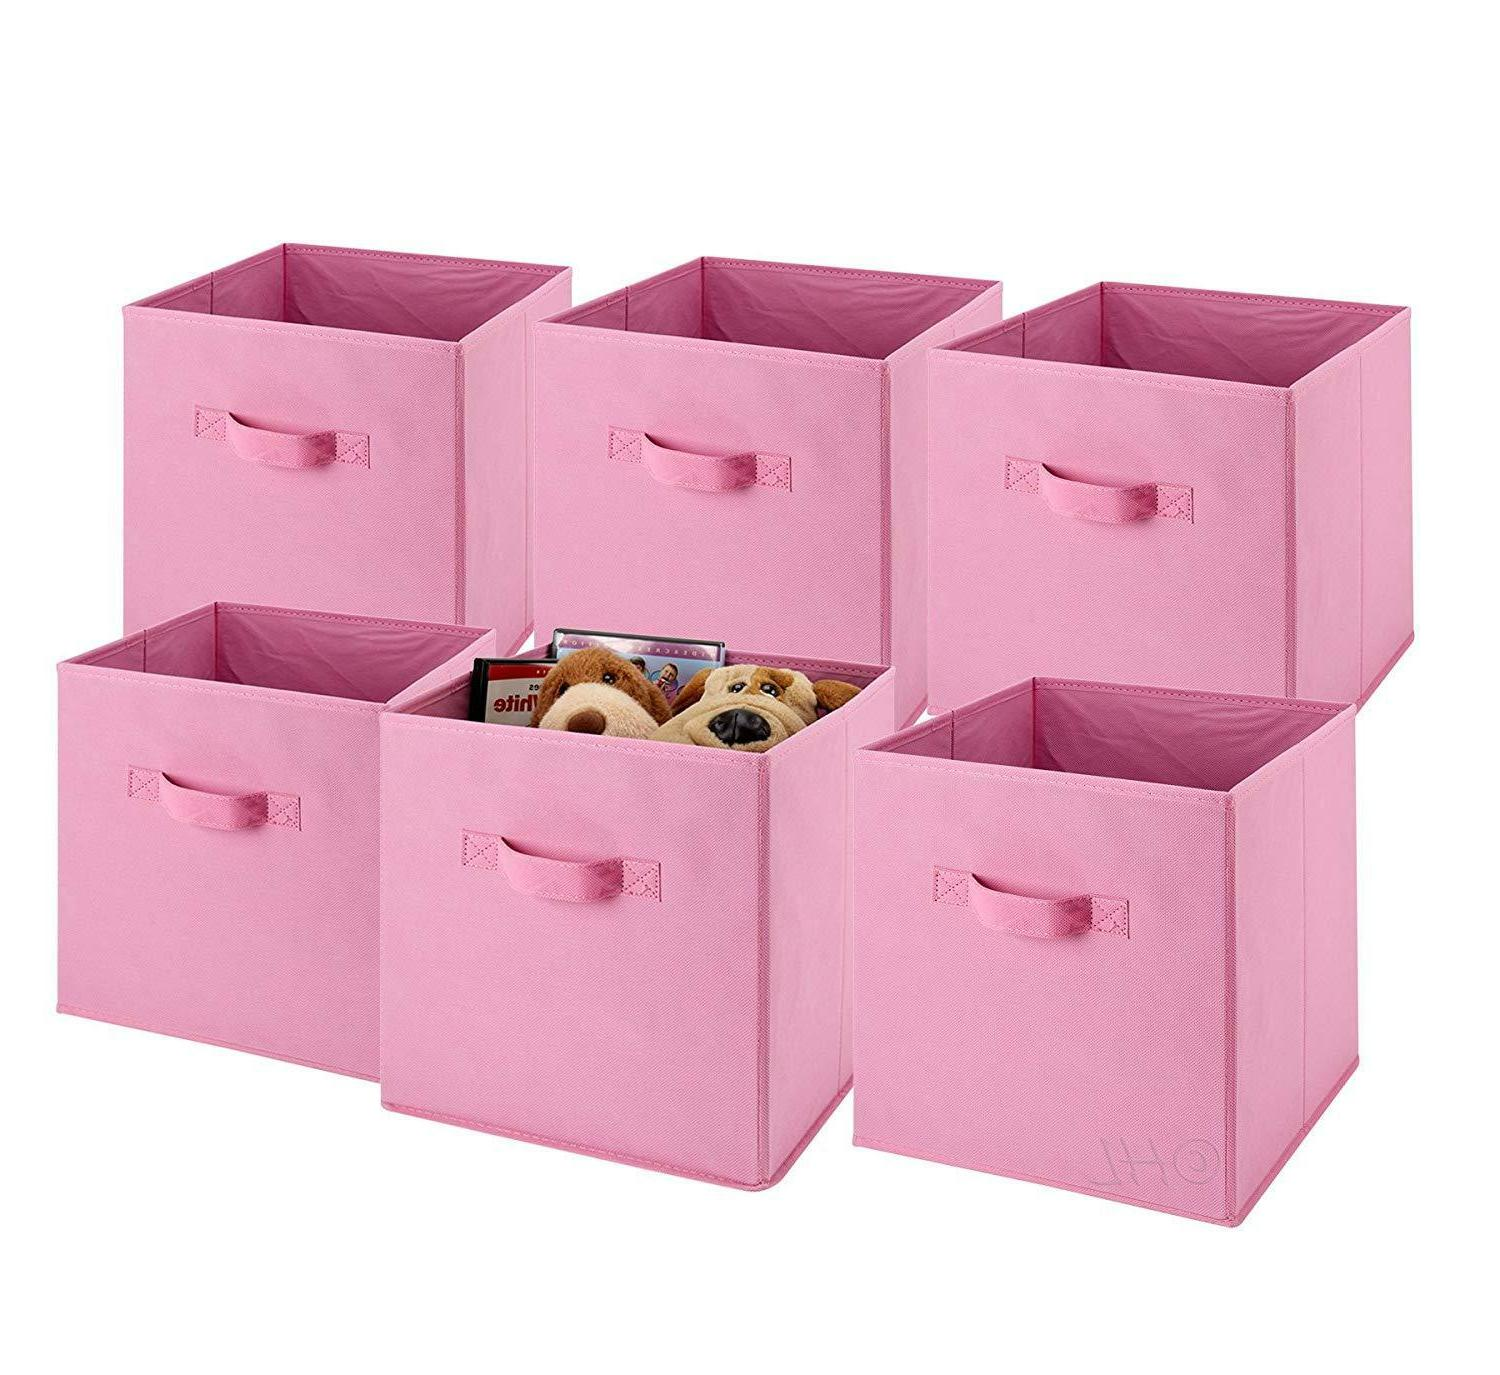 6 Cubes Bins Shelf Organizer